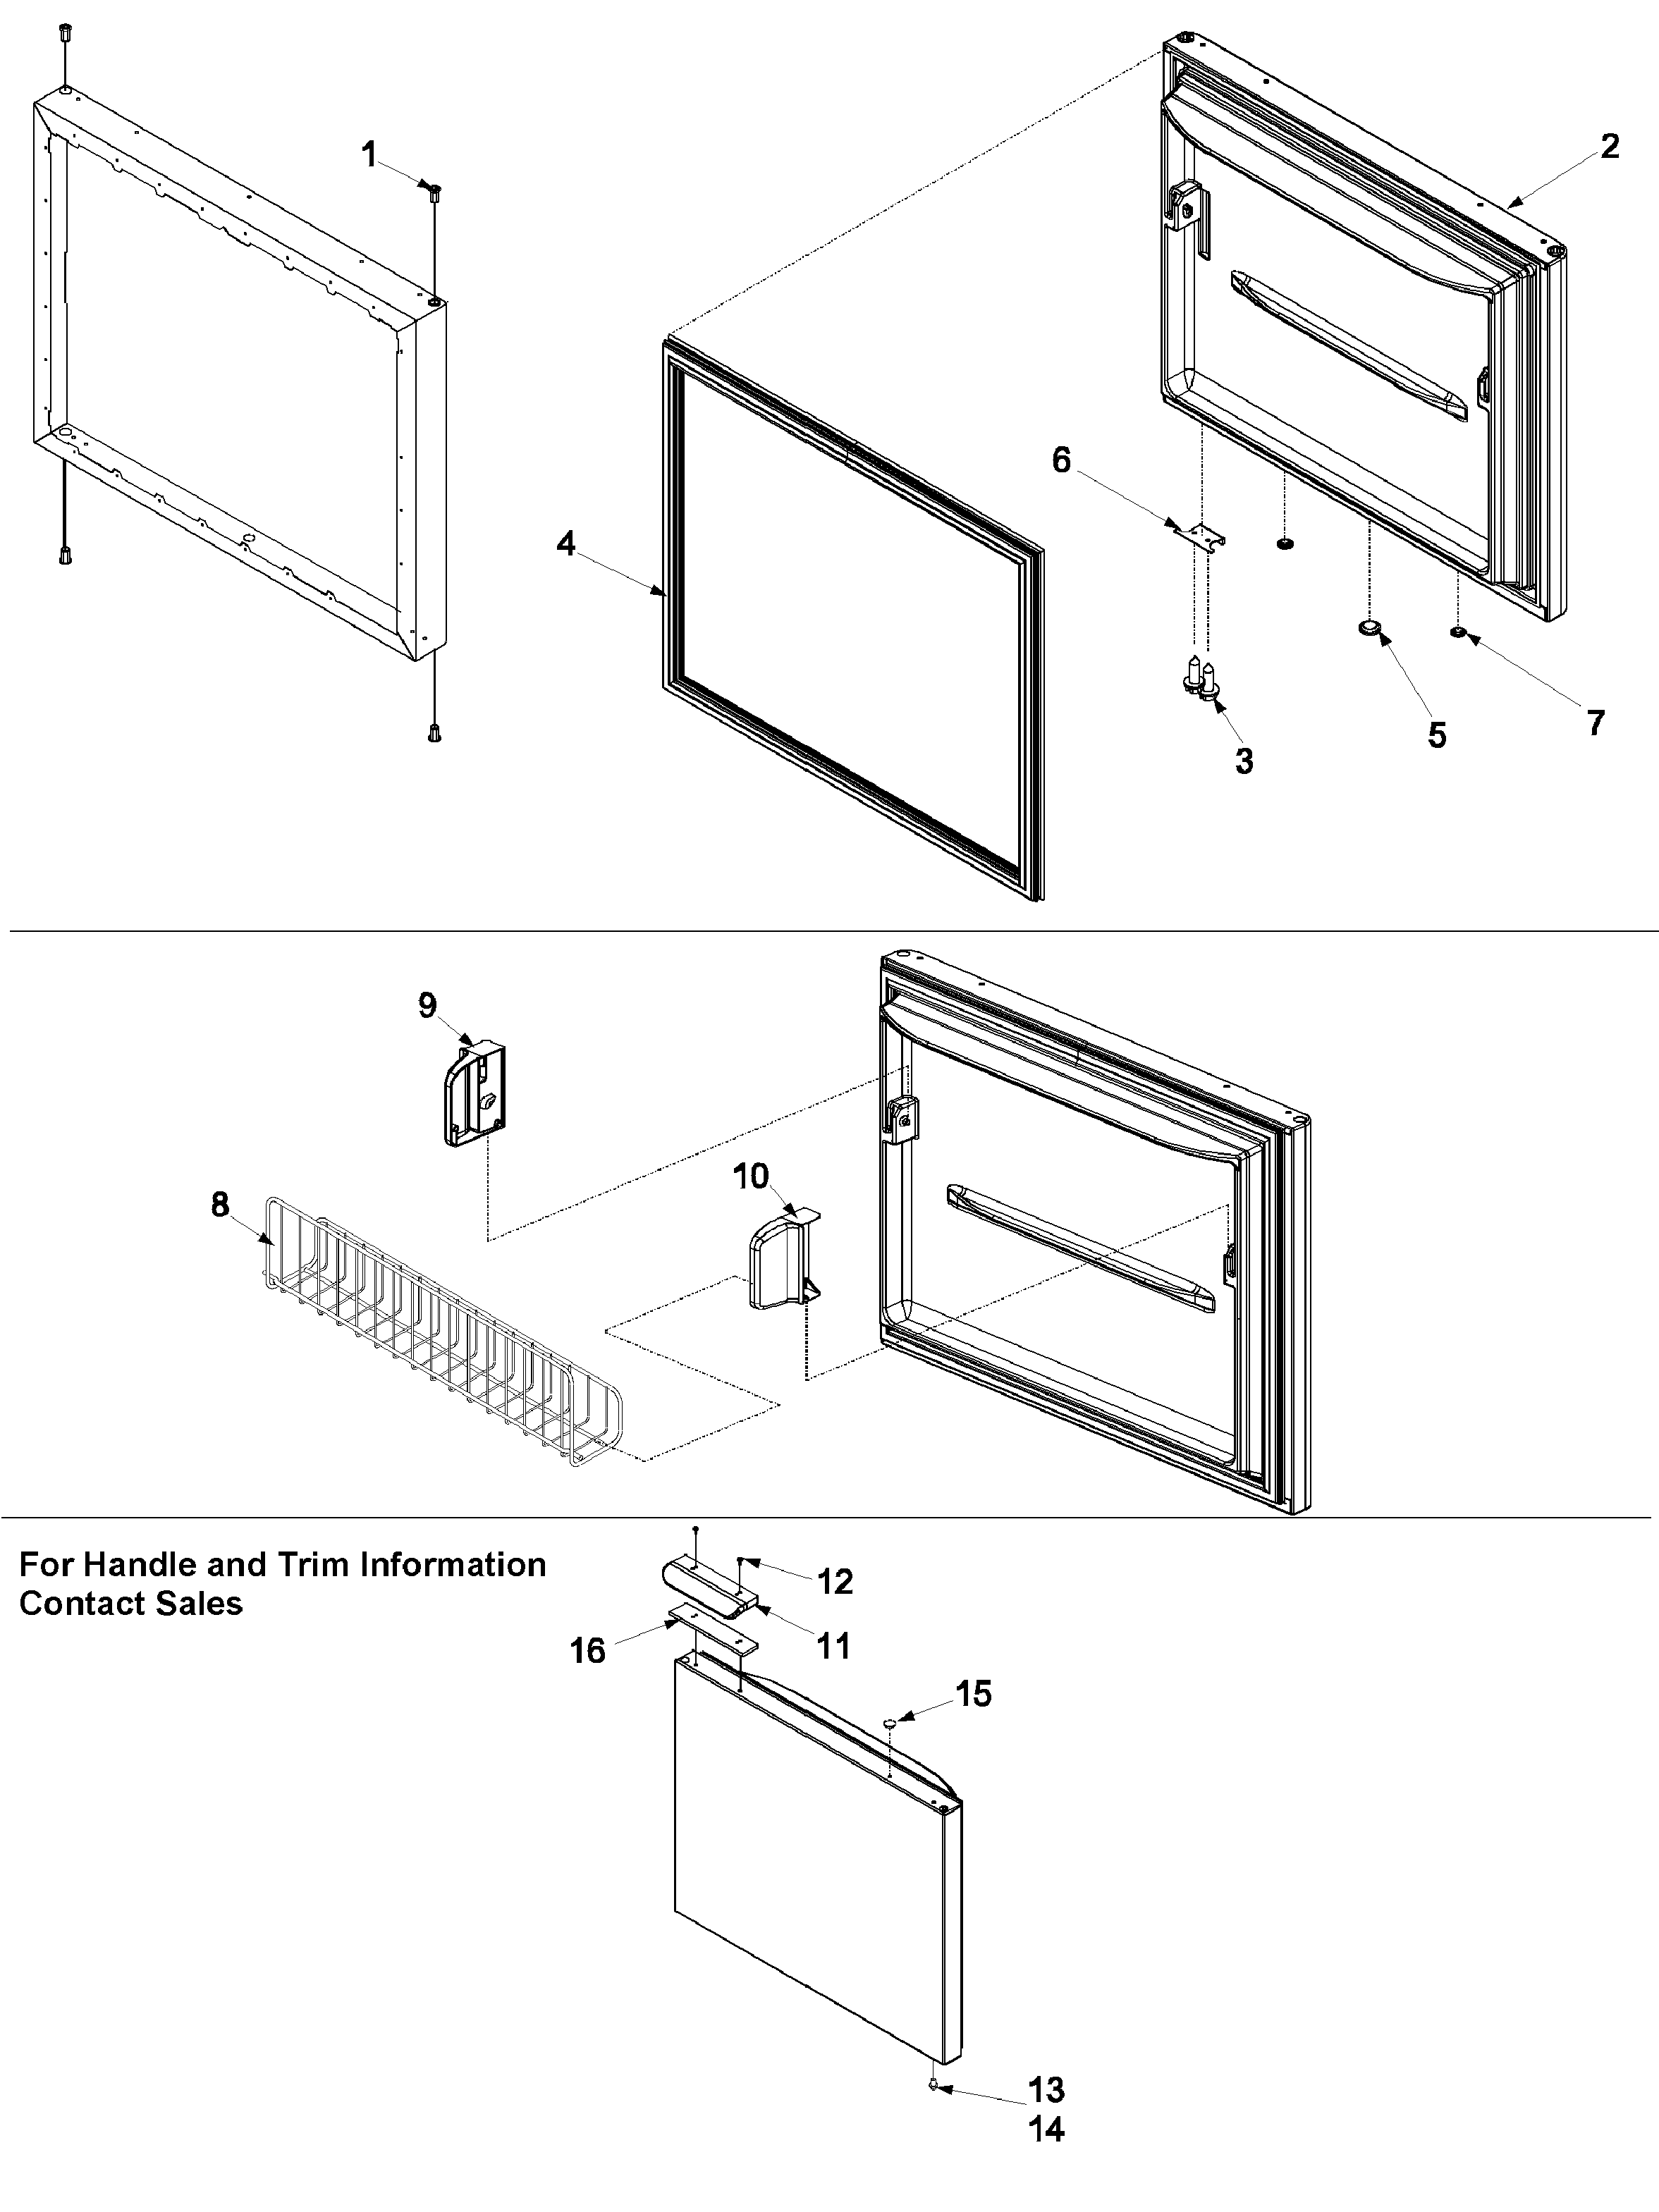 Amana XRBR206BW0 freezer door diagram